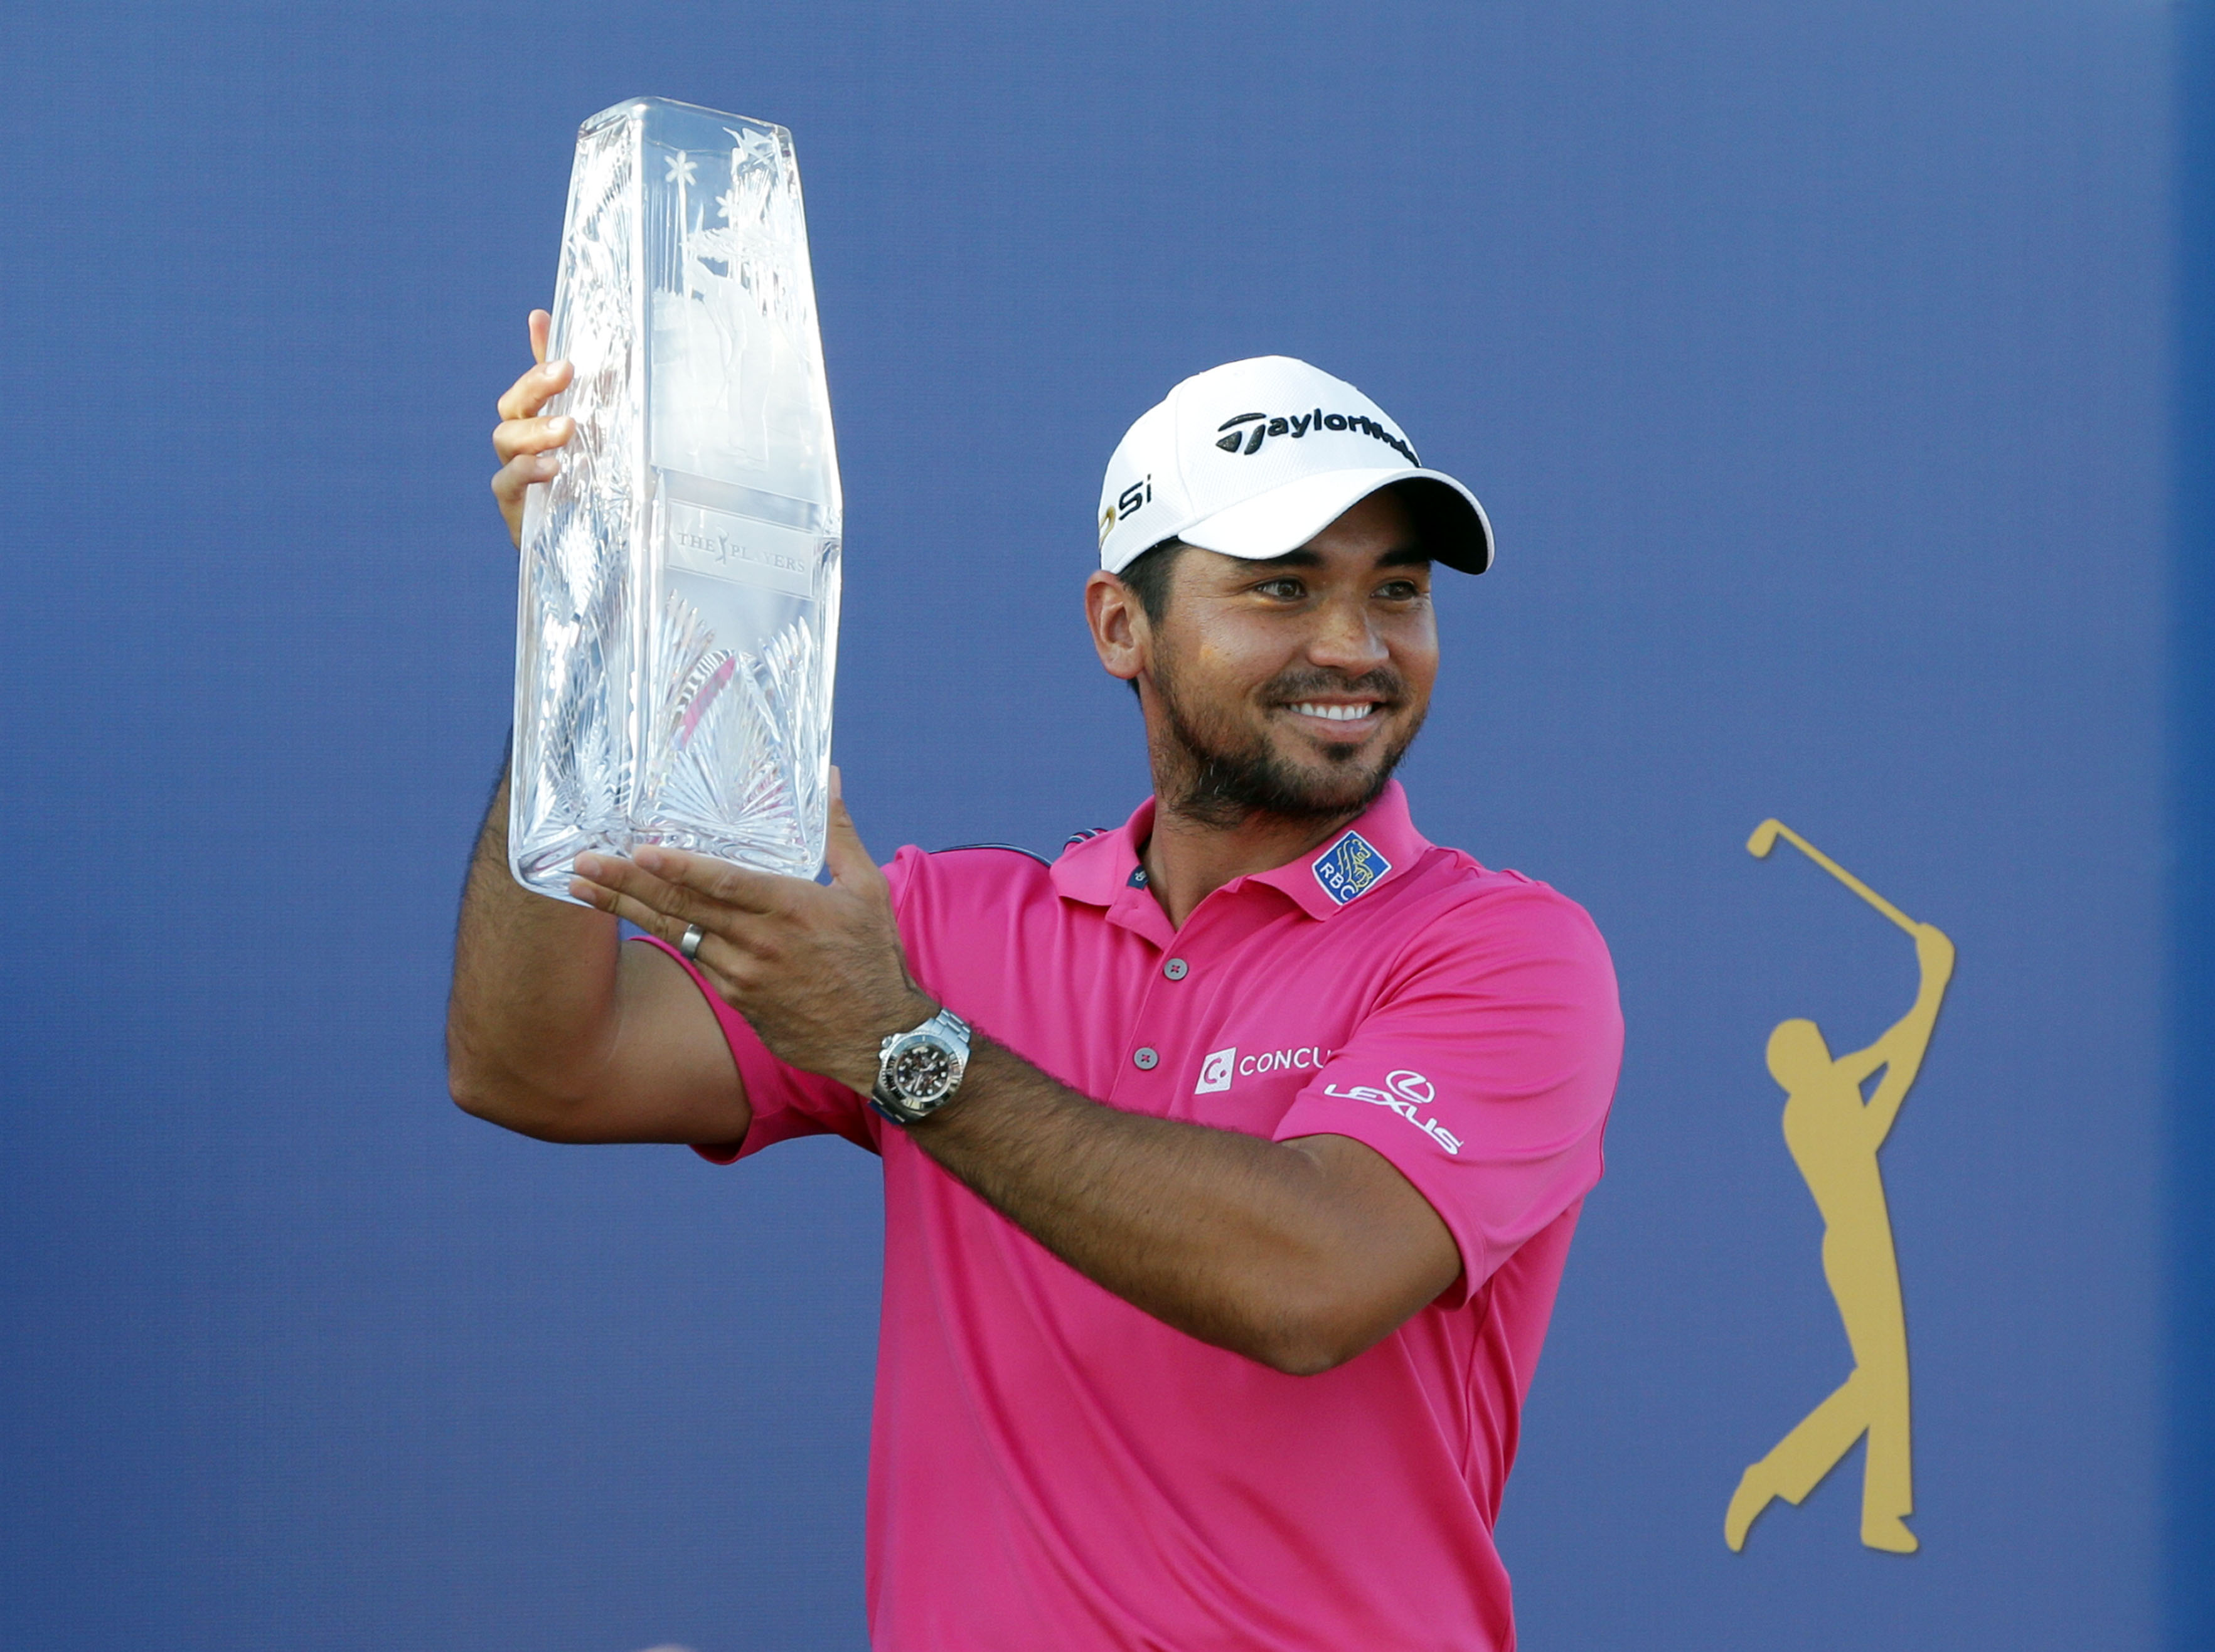 World No. 1 Jason Day showed why he's the best player in the world at TPC Sawgrass. How far above the pack is he?